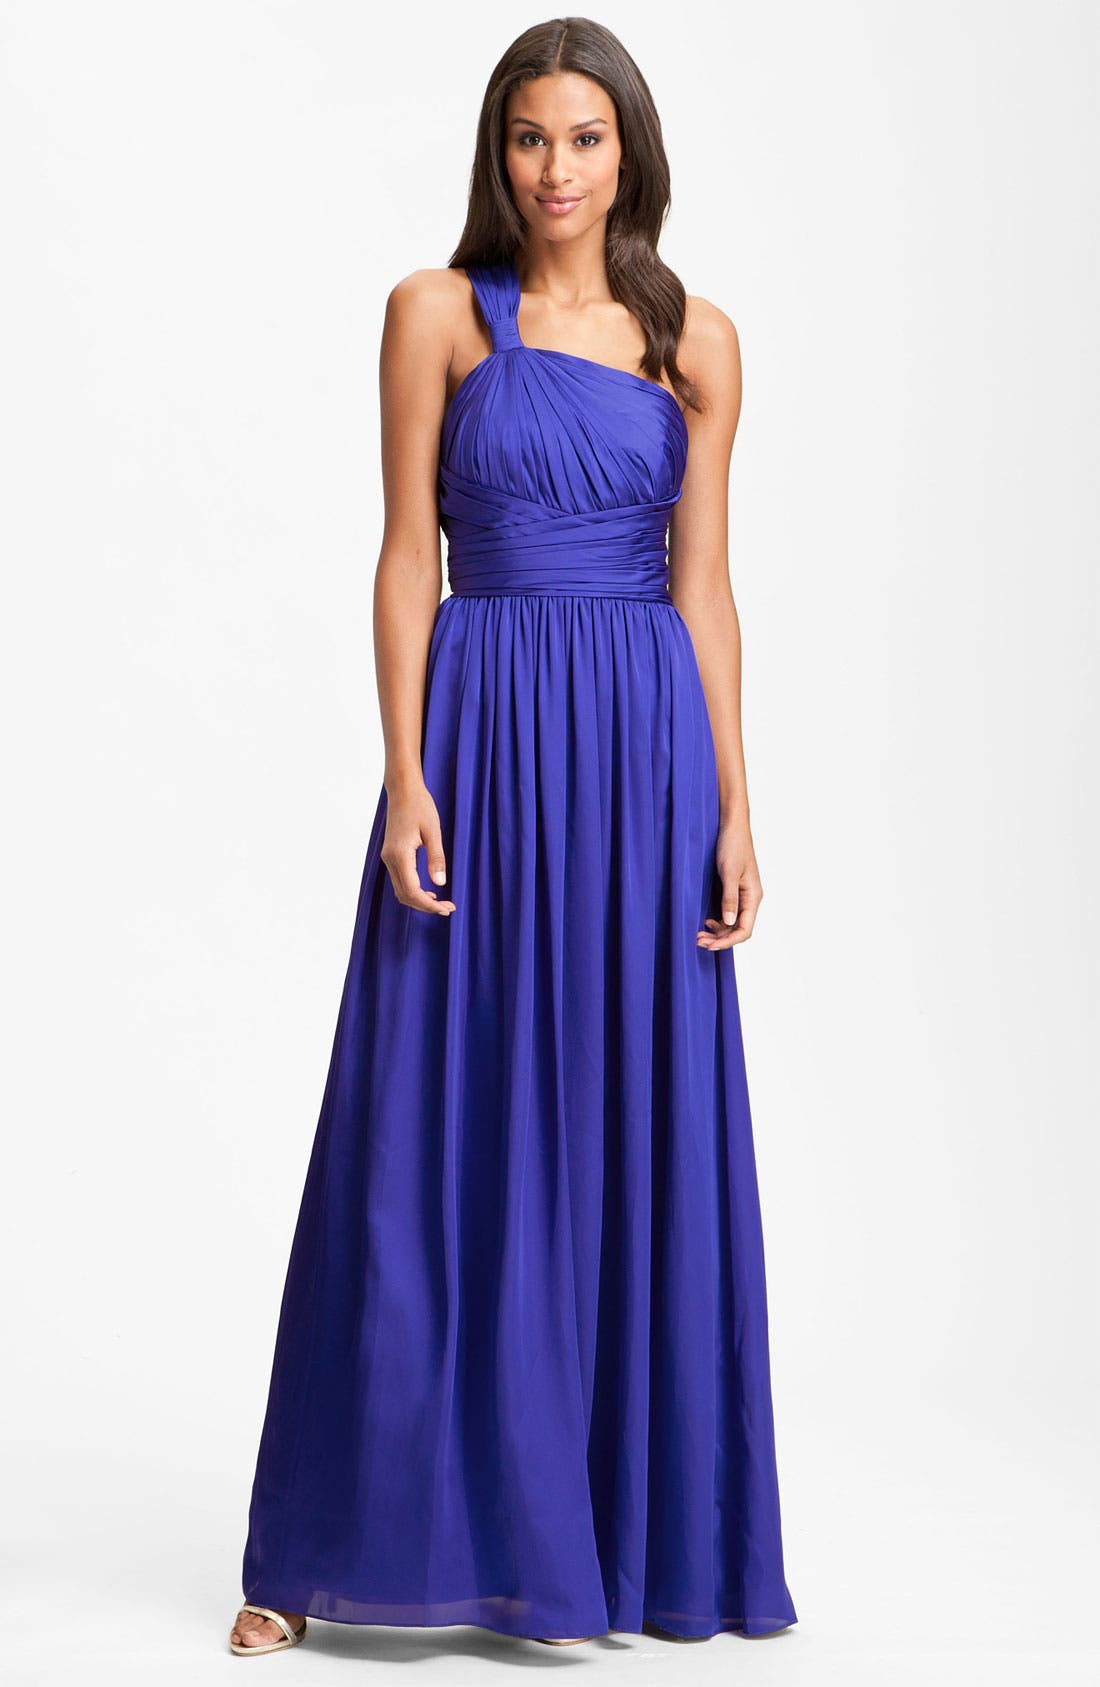 Main Image - ML Monique Lhuillier Bridesmaids One Shoulder Charmeuse Gown (Nordstrom Exclusive)